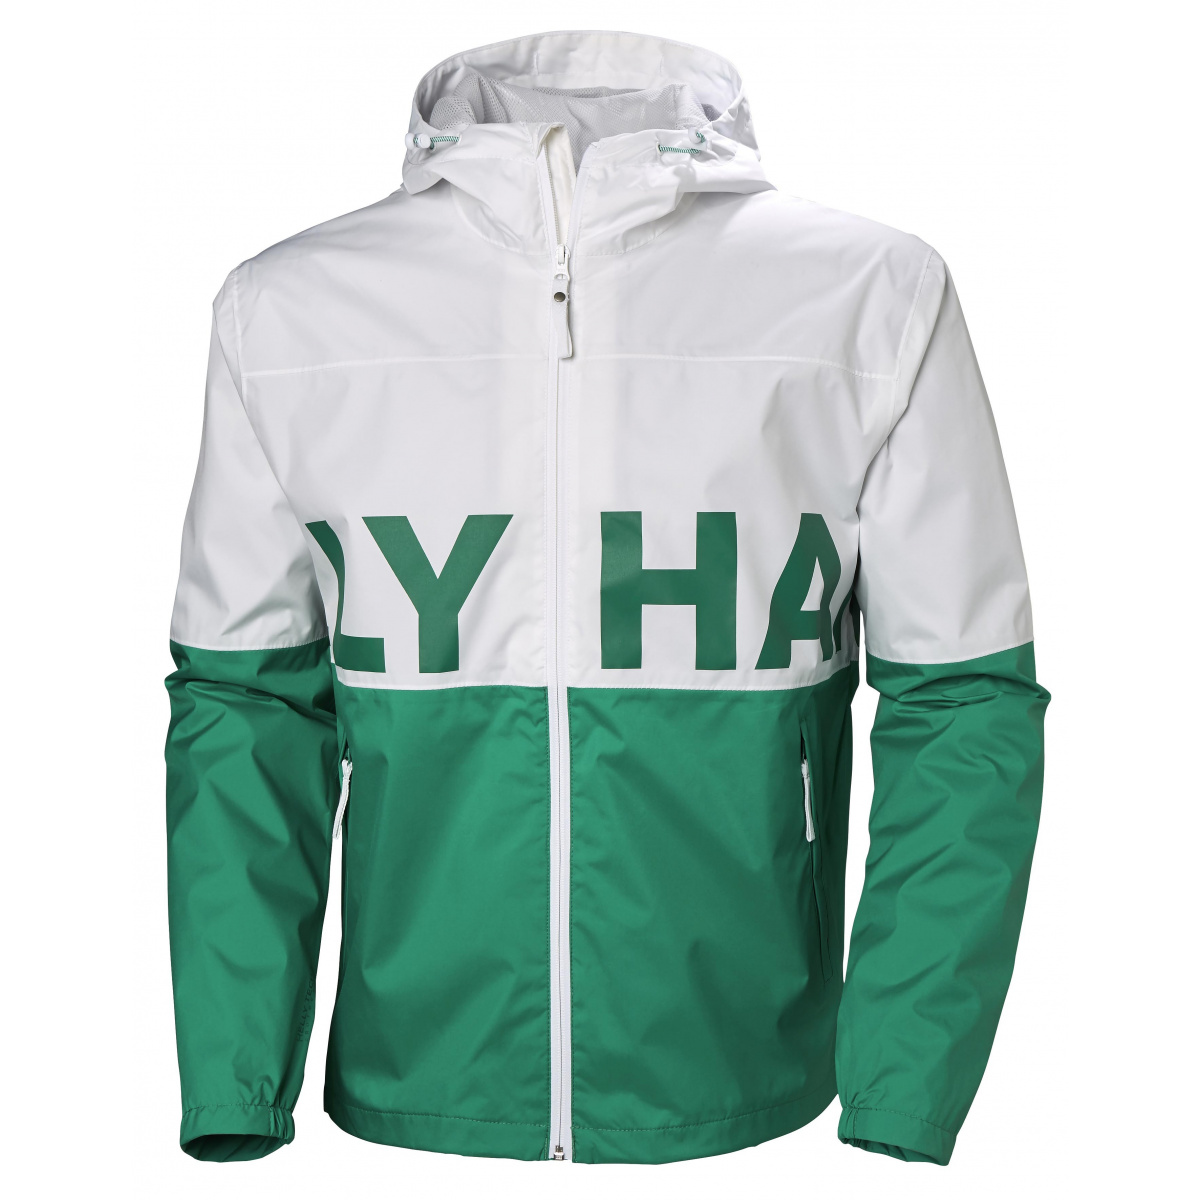 Coupe vent helly hansen homme